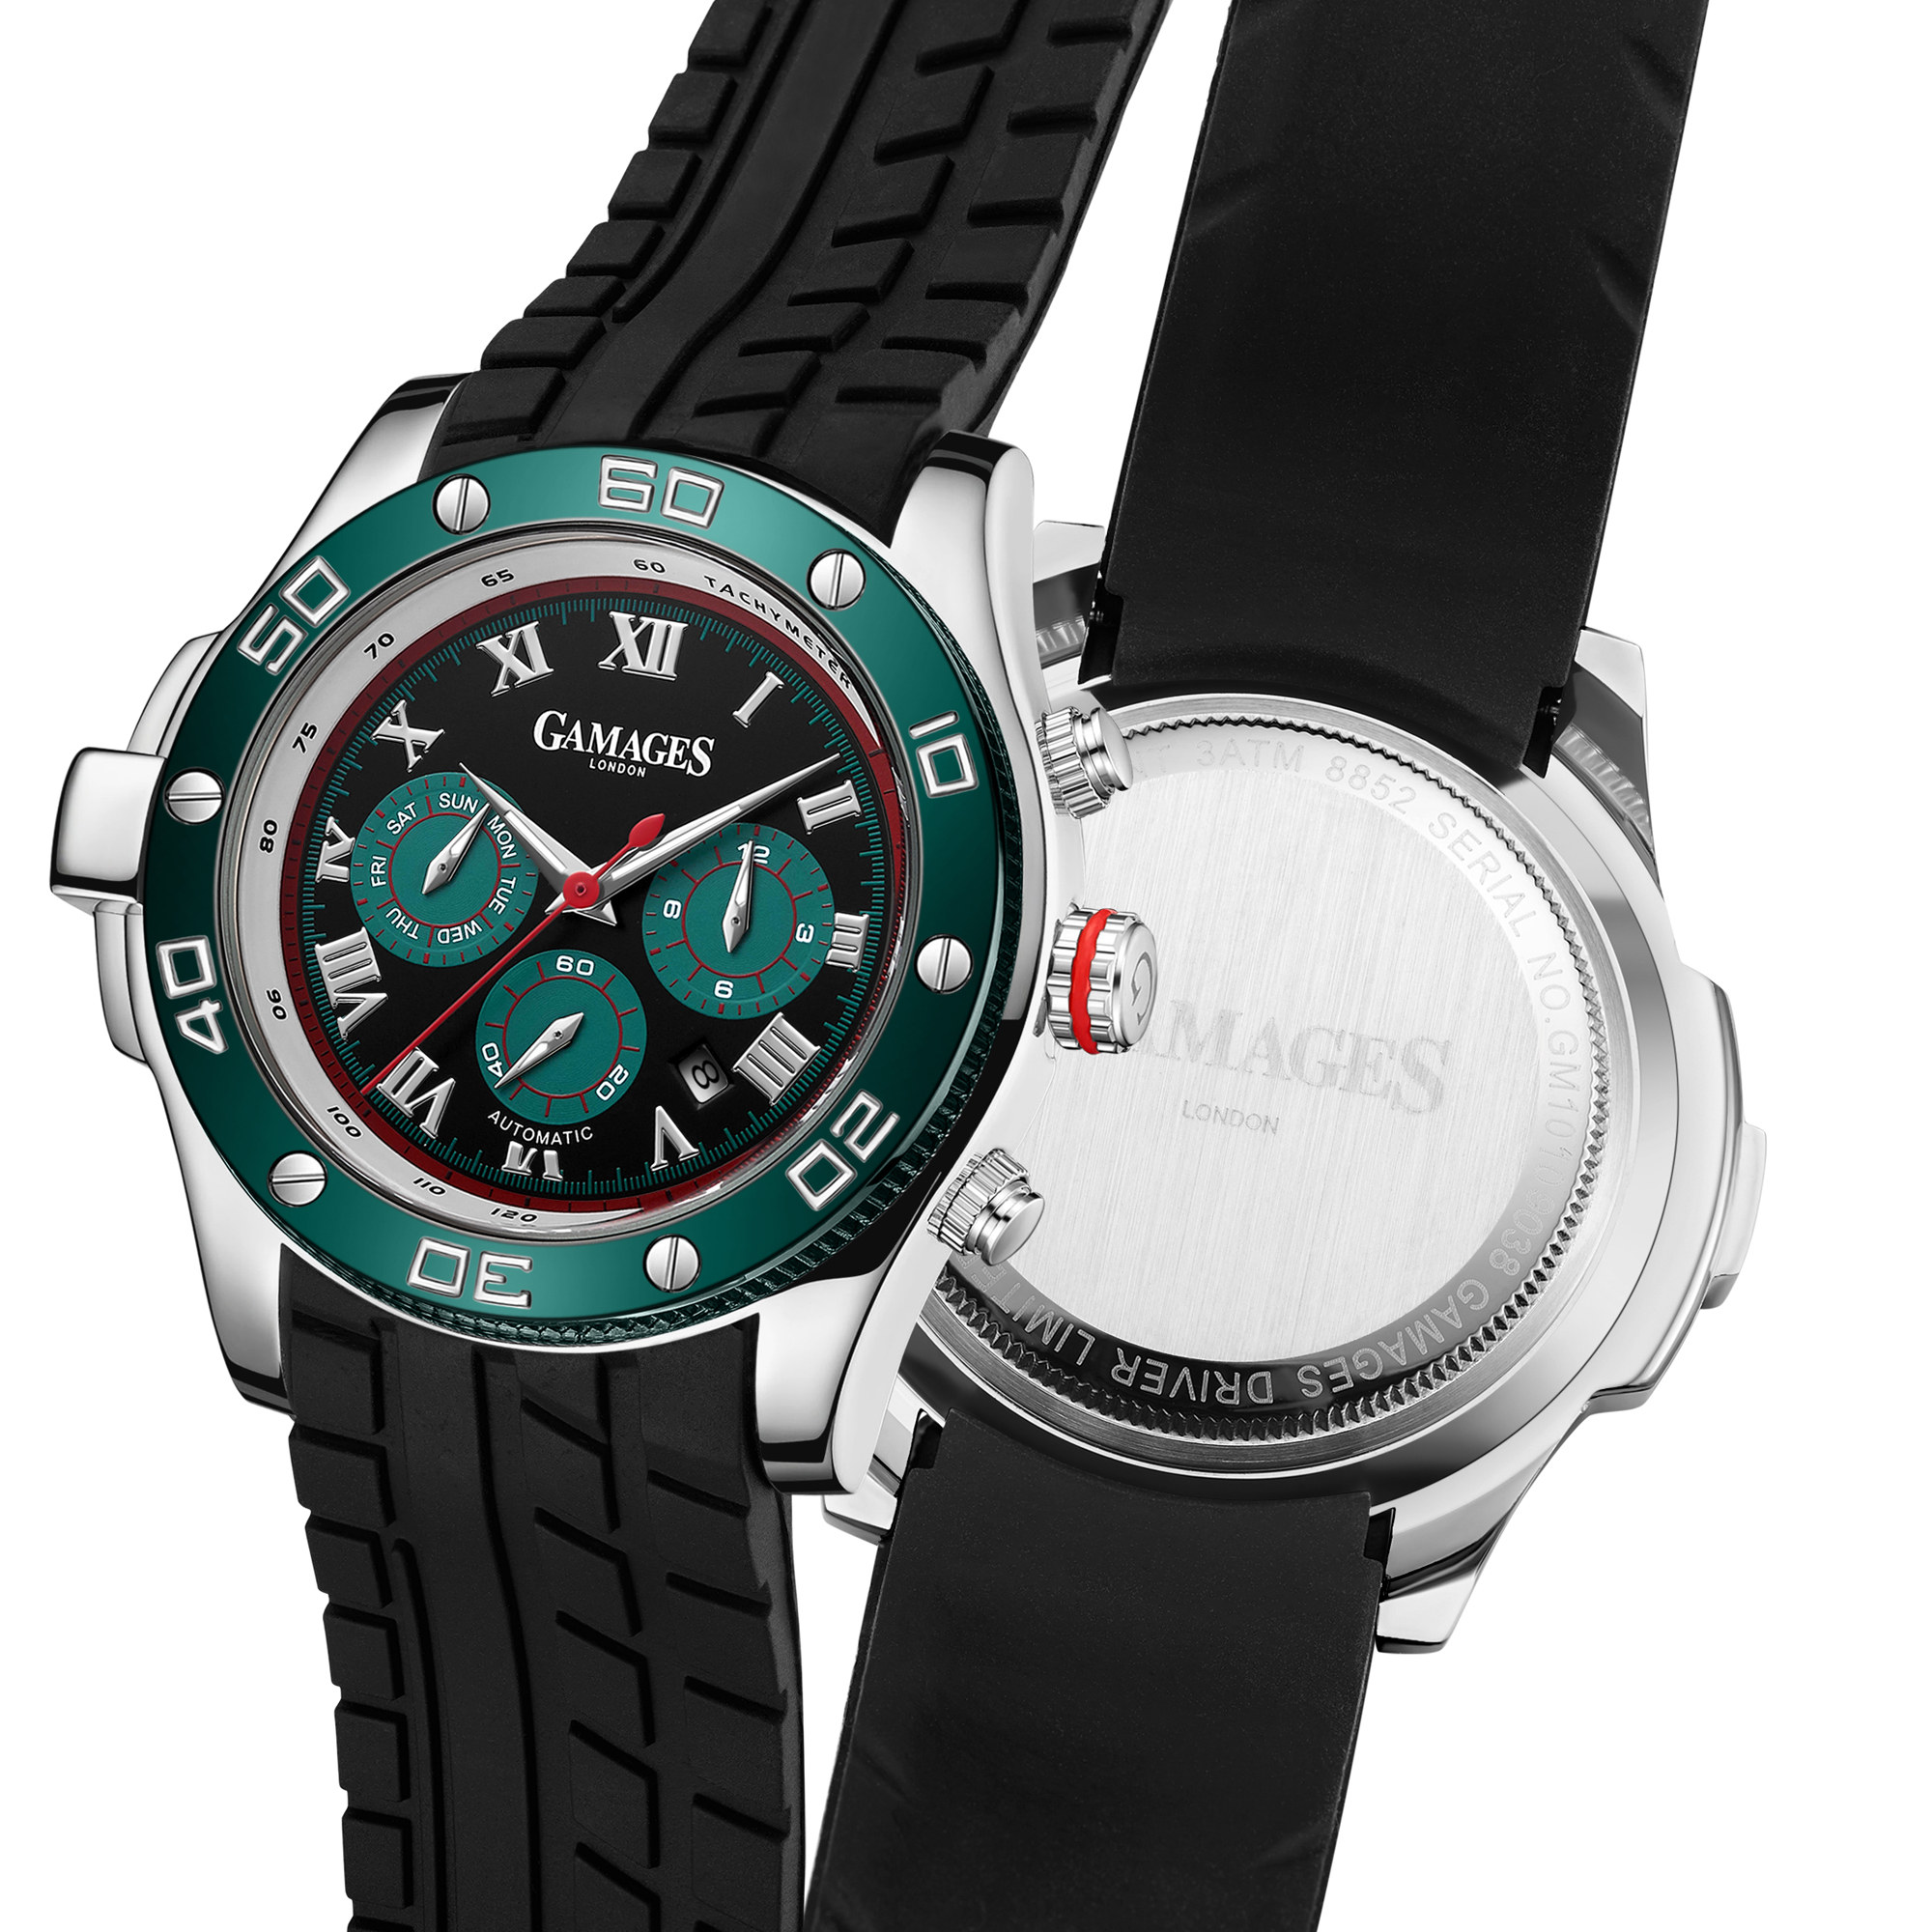 Ltd Edition Hand Assembled Gamages Driver Automatic Black – 5 Year Warranty & Free Delivery - Image 5 of 5